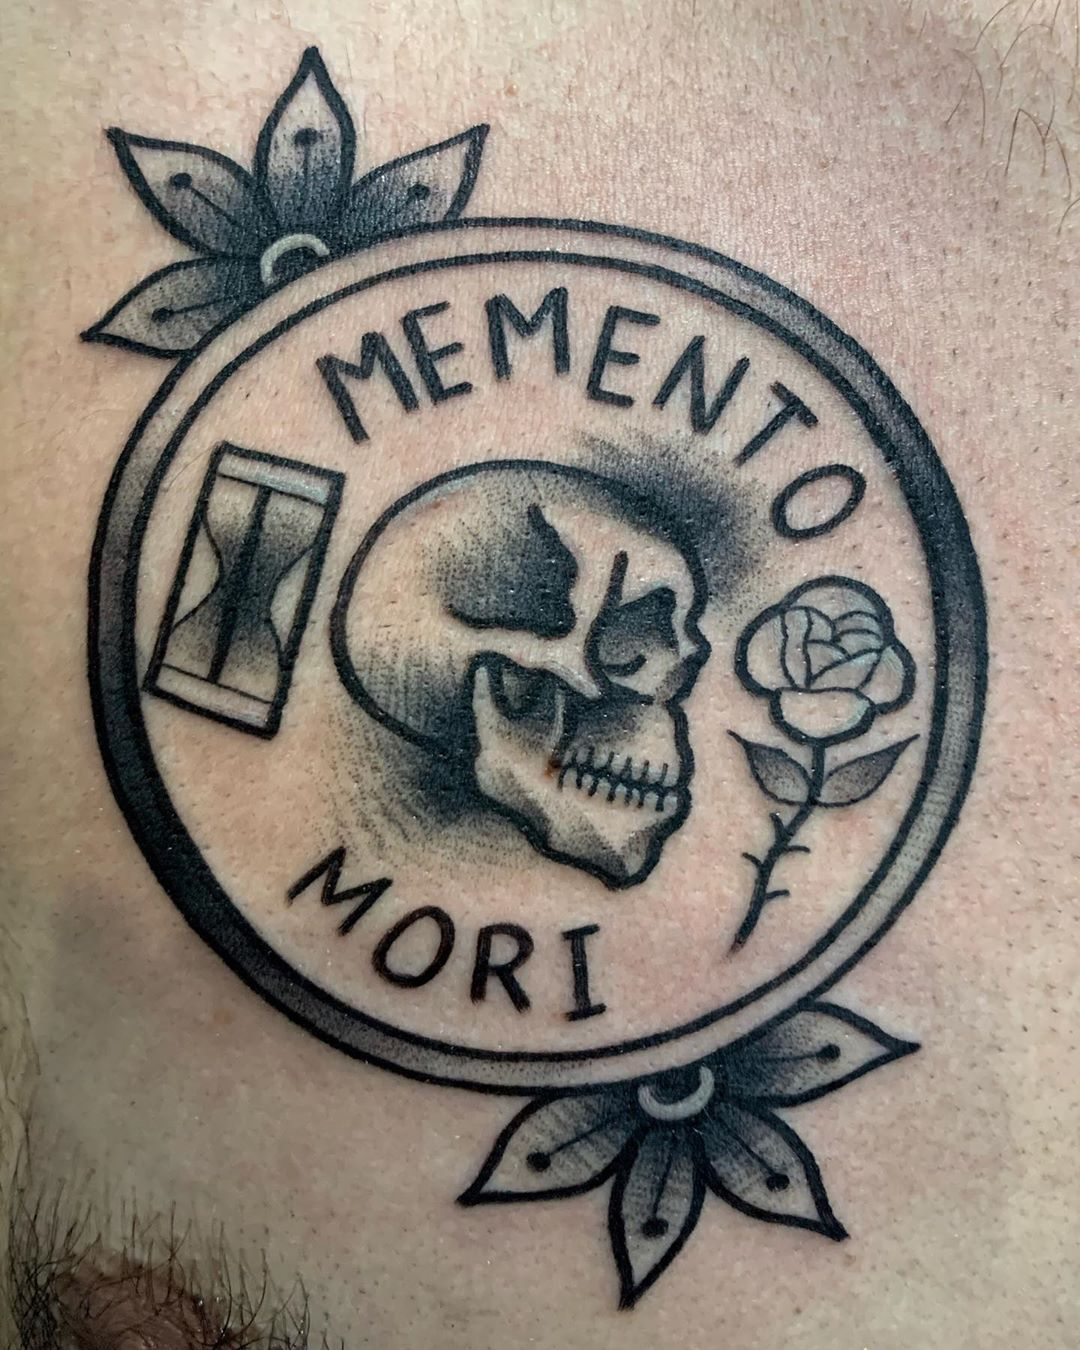 Memento Mori By Kong Tattoo For Enquiry And Appointment Kindly Message Or Email Us Thank You Ta Memento Mori Tattoo Momento Mori Tattoo Aztec Tattoo Designs